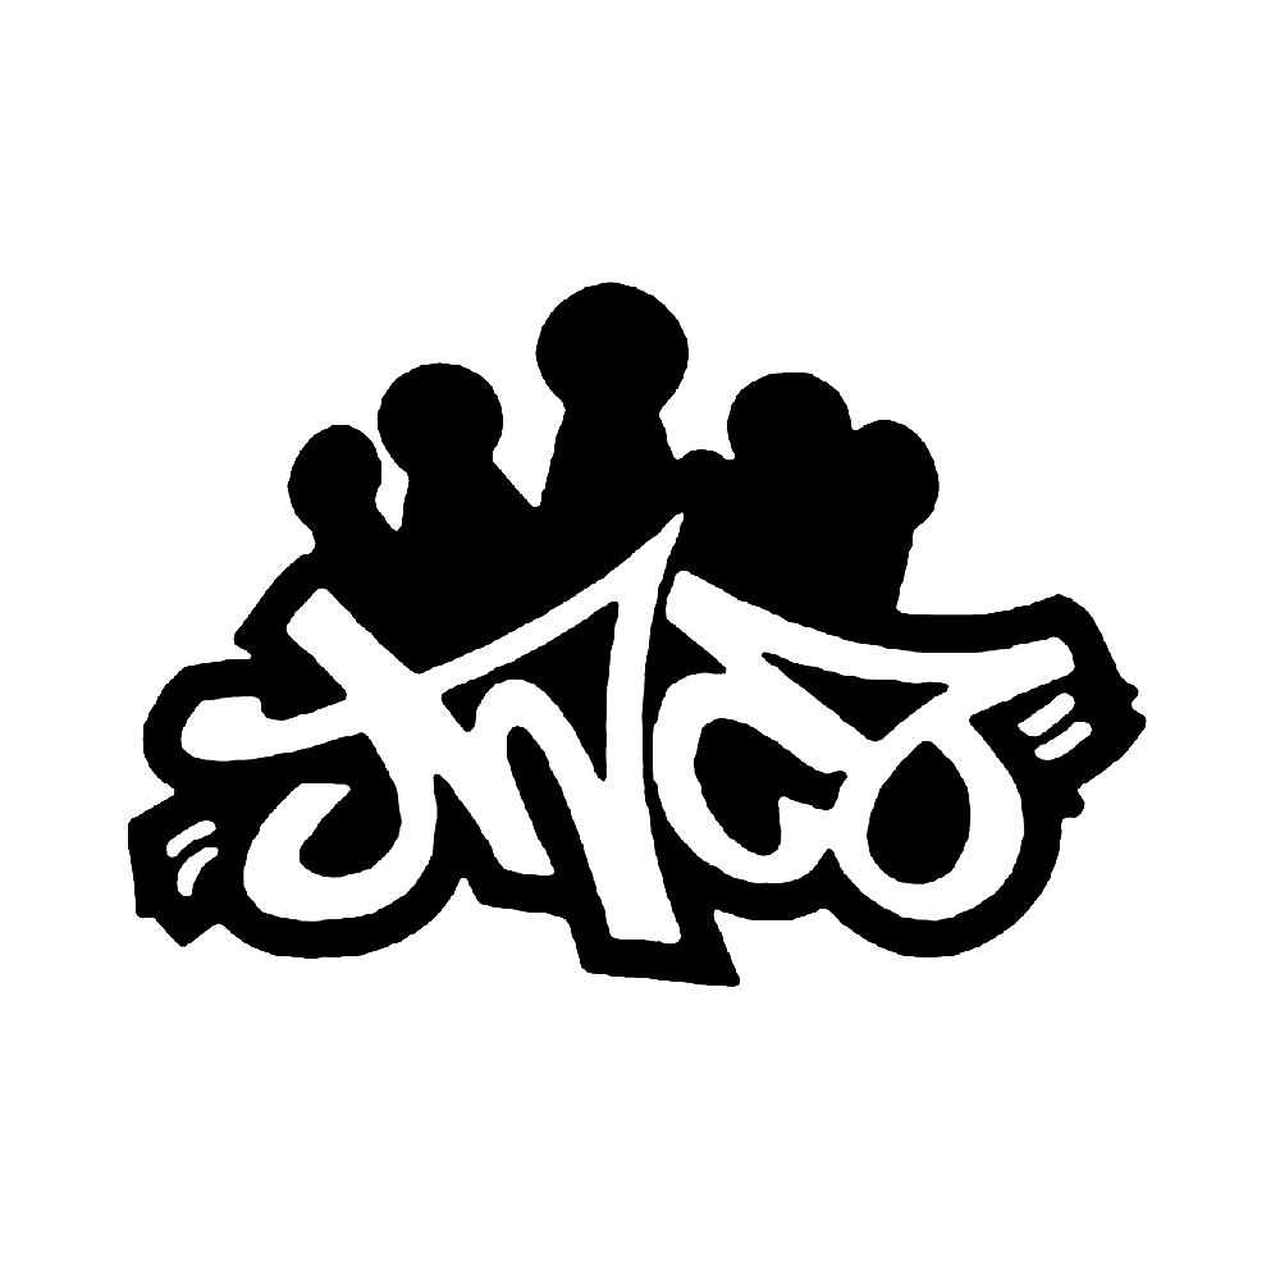 JNCO Jeans SkateBoard Vinyl Decal.